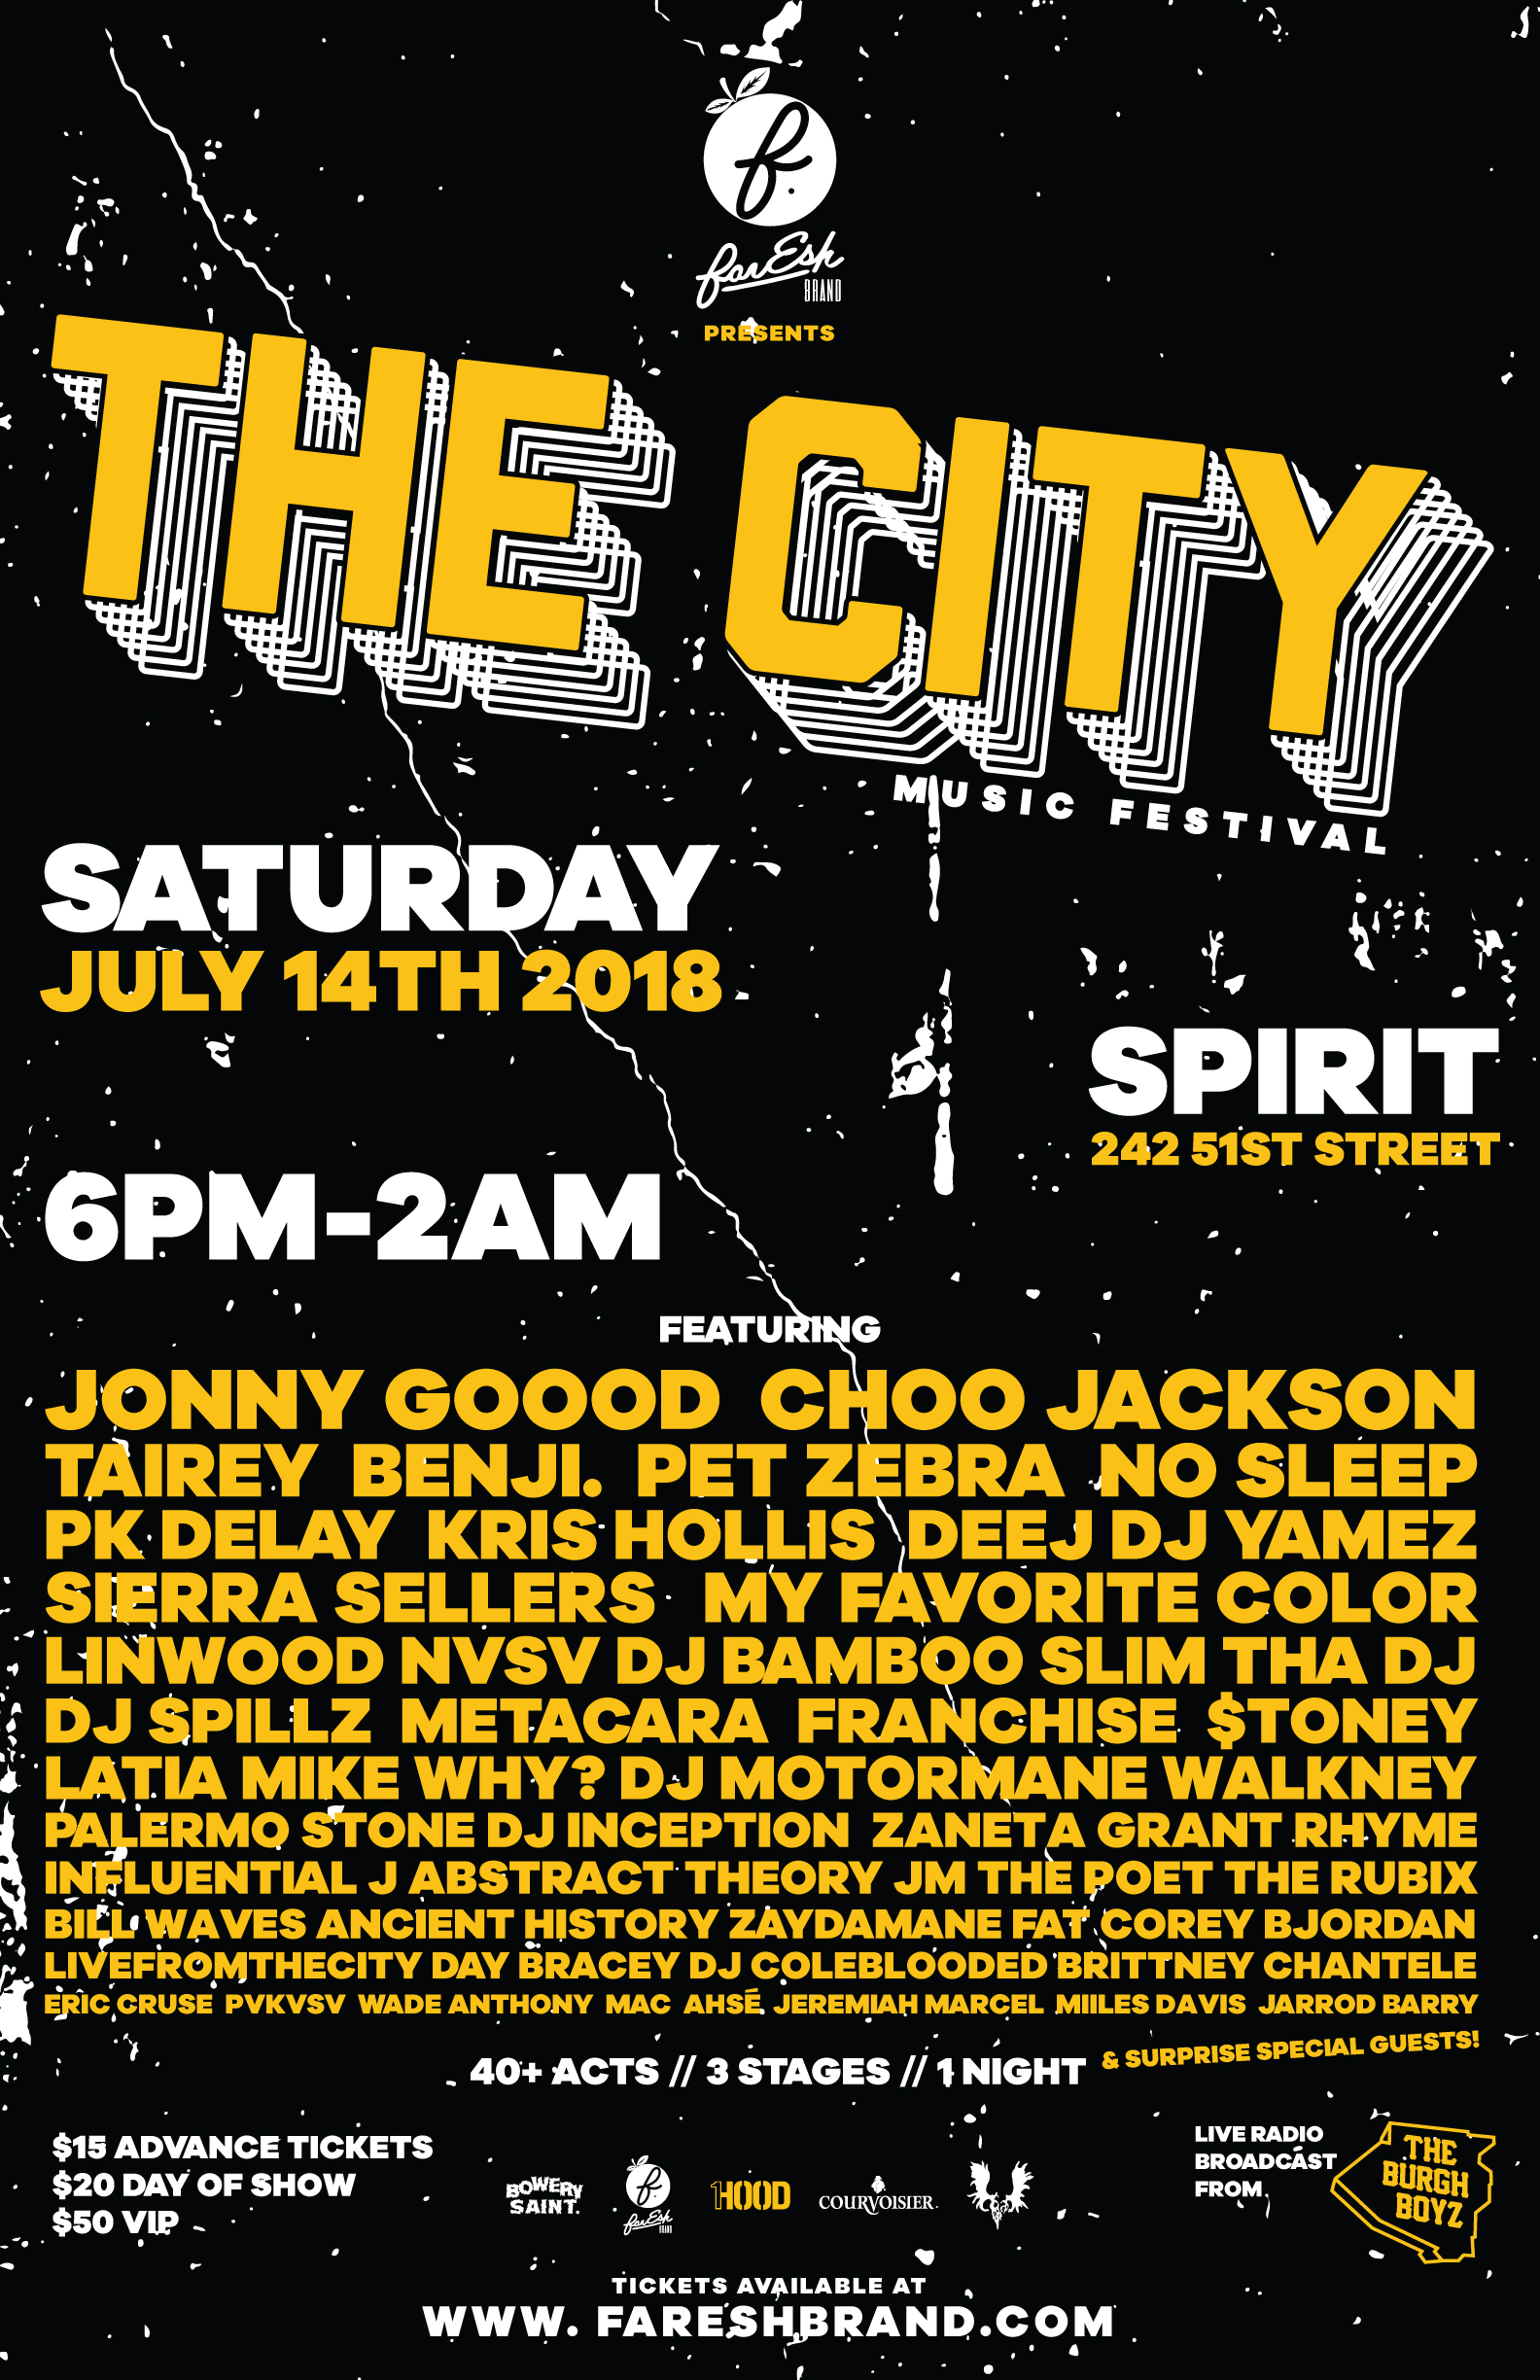 The-City-Flyer-July-2018.jpg